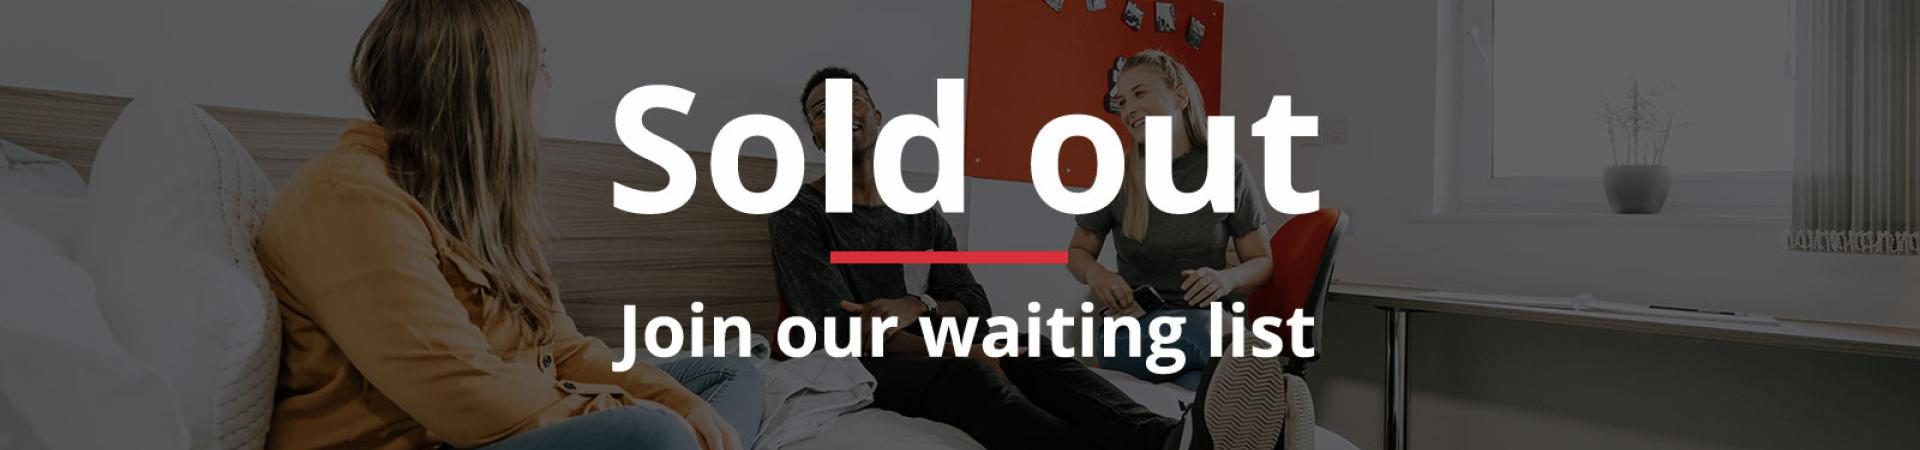 Tramways, Salford is sold out but you can join our waiting list